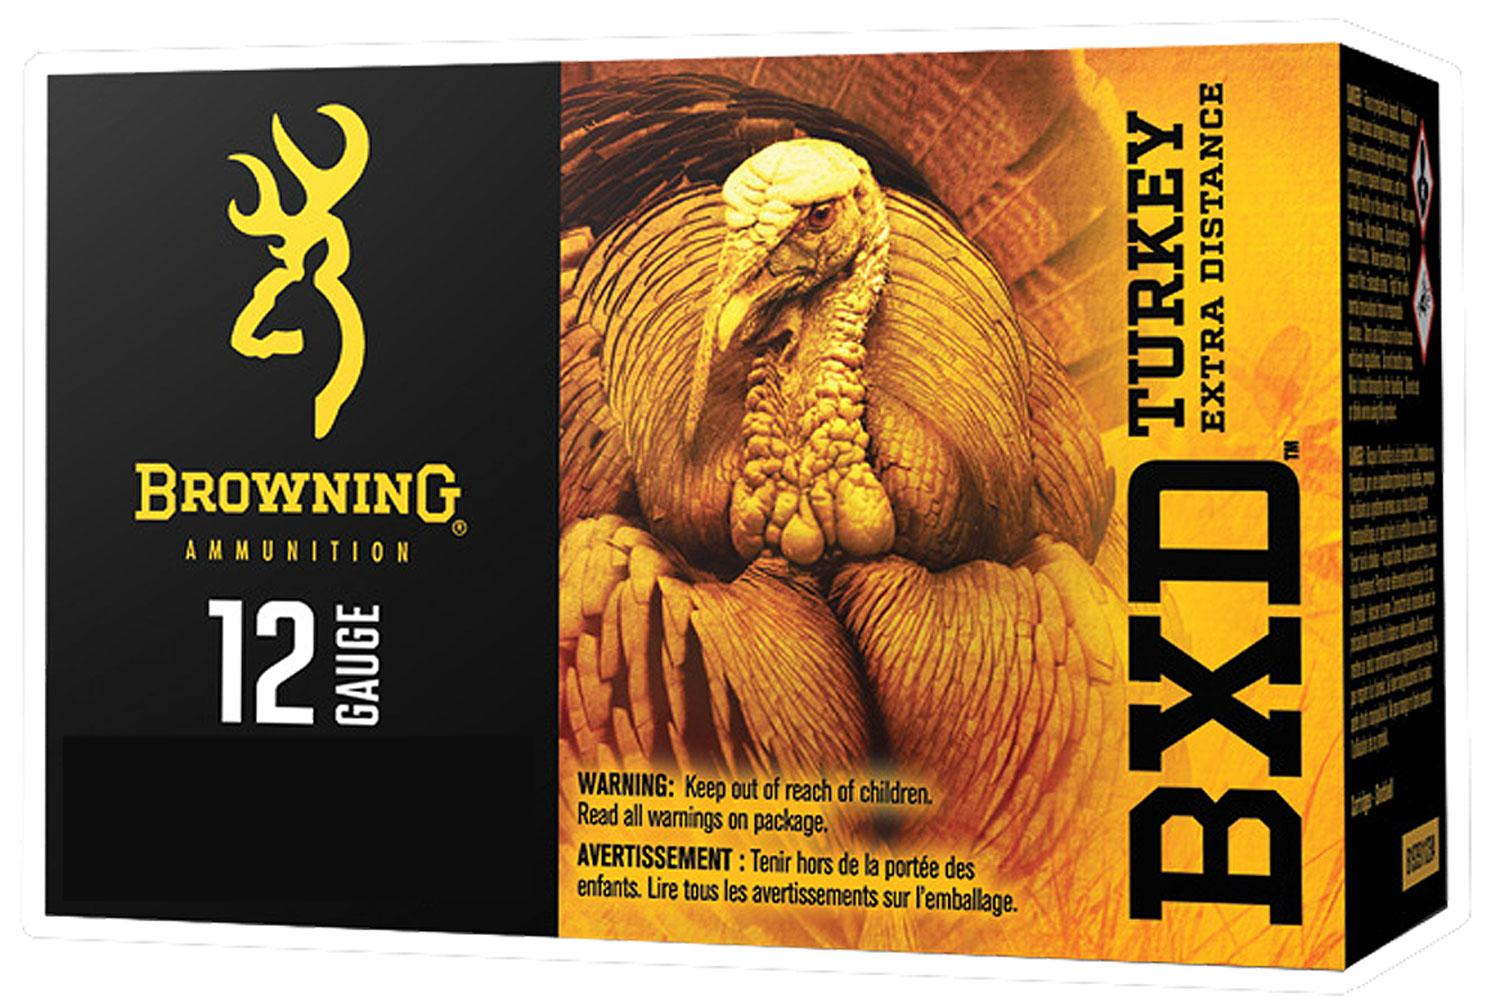 Browning Ammo B193911245 Bxd Extra Distance Turkey 12 Gauge 3.5